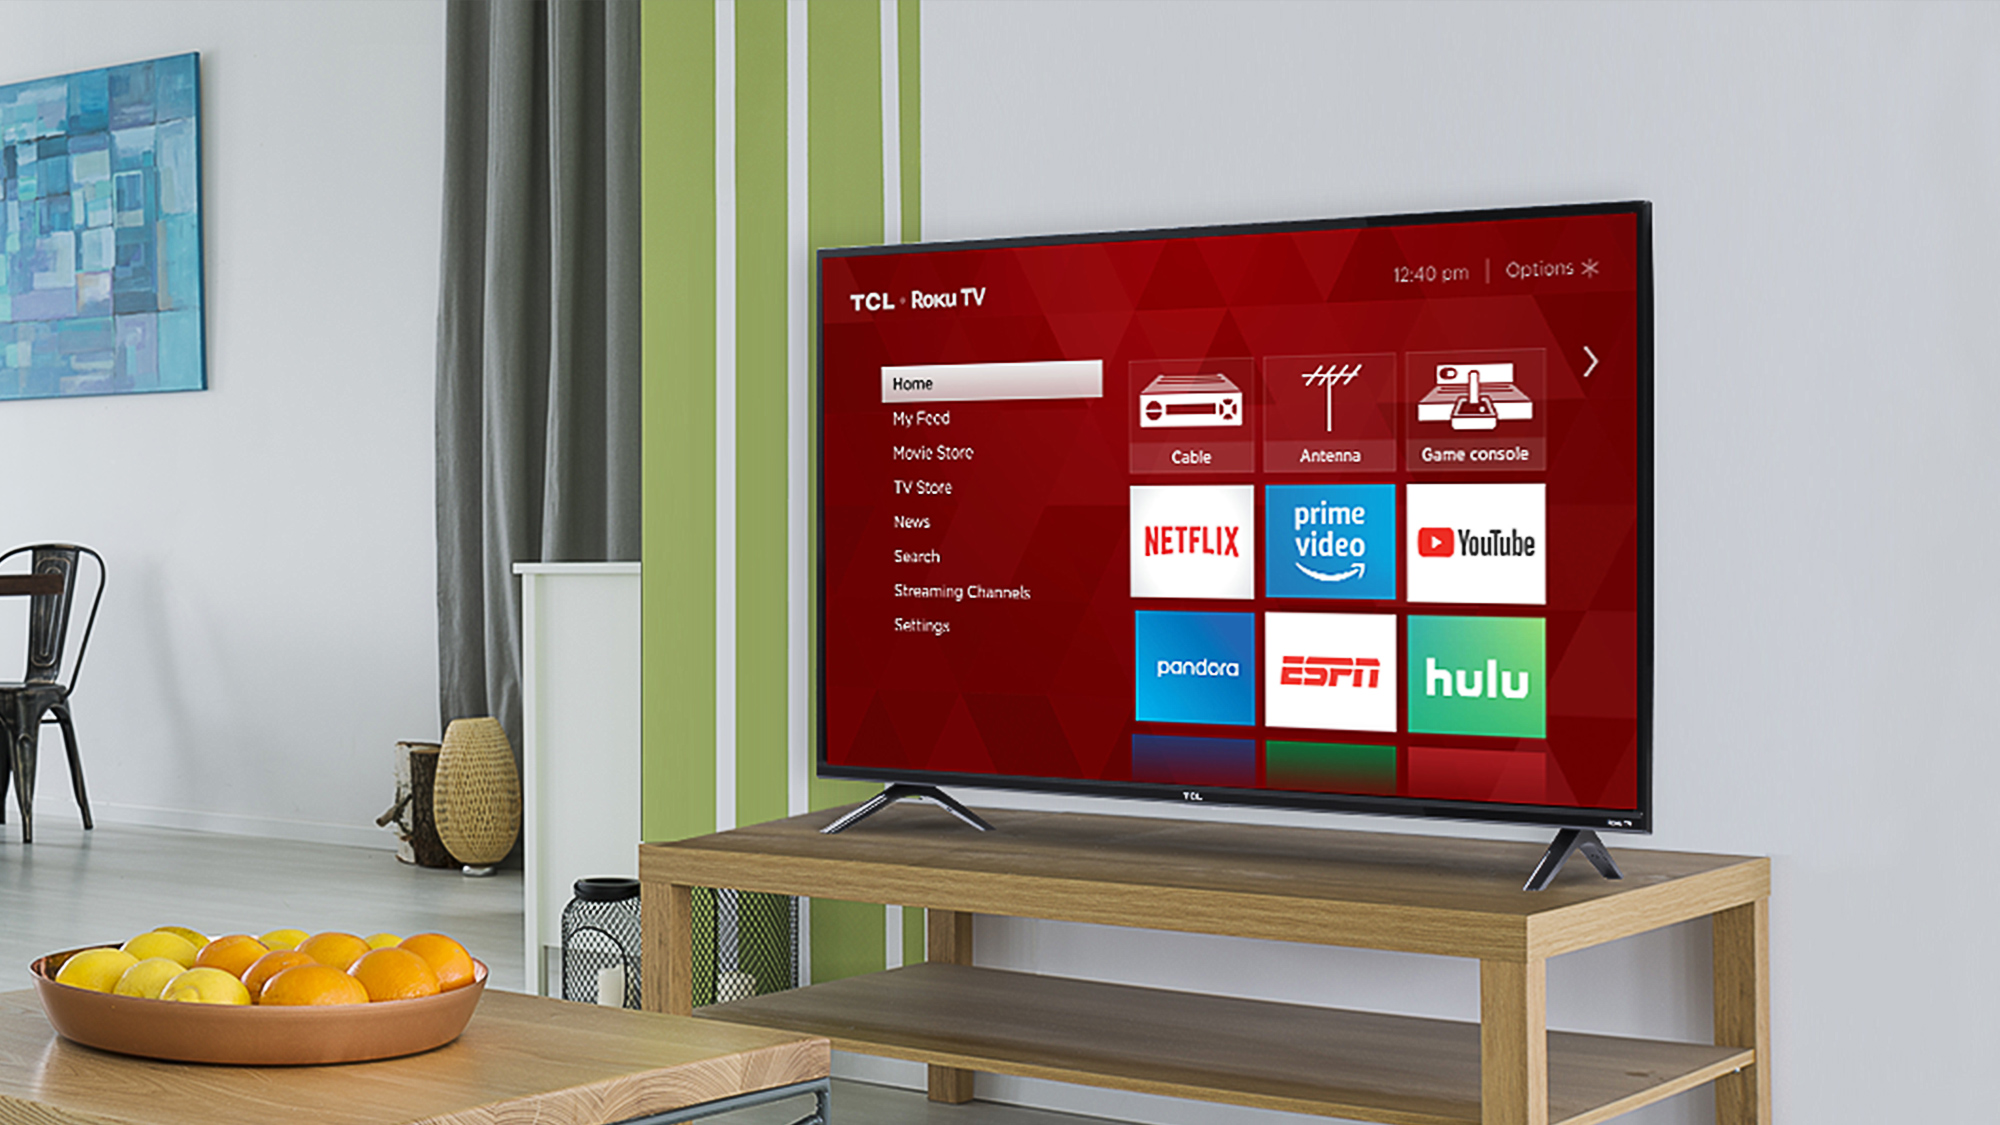 Tcl 3 Series 32 Inch Roku Tv Review A Small Smart Tv That S Cheap Tom S Guide